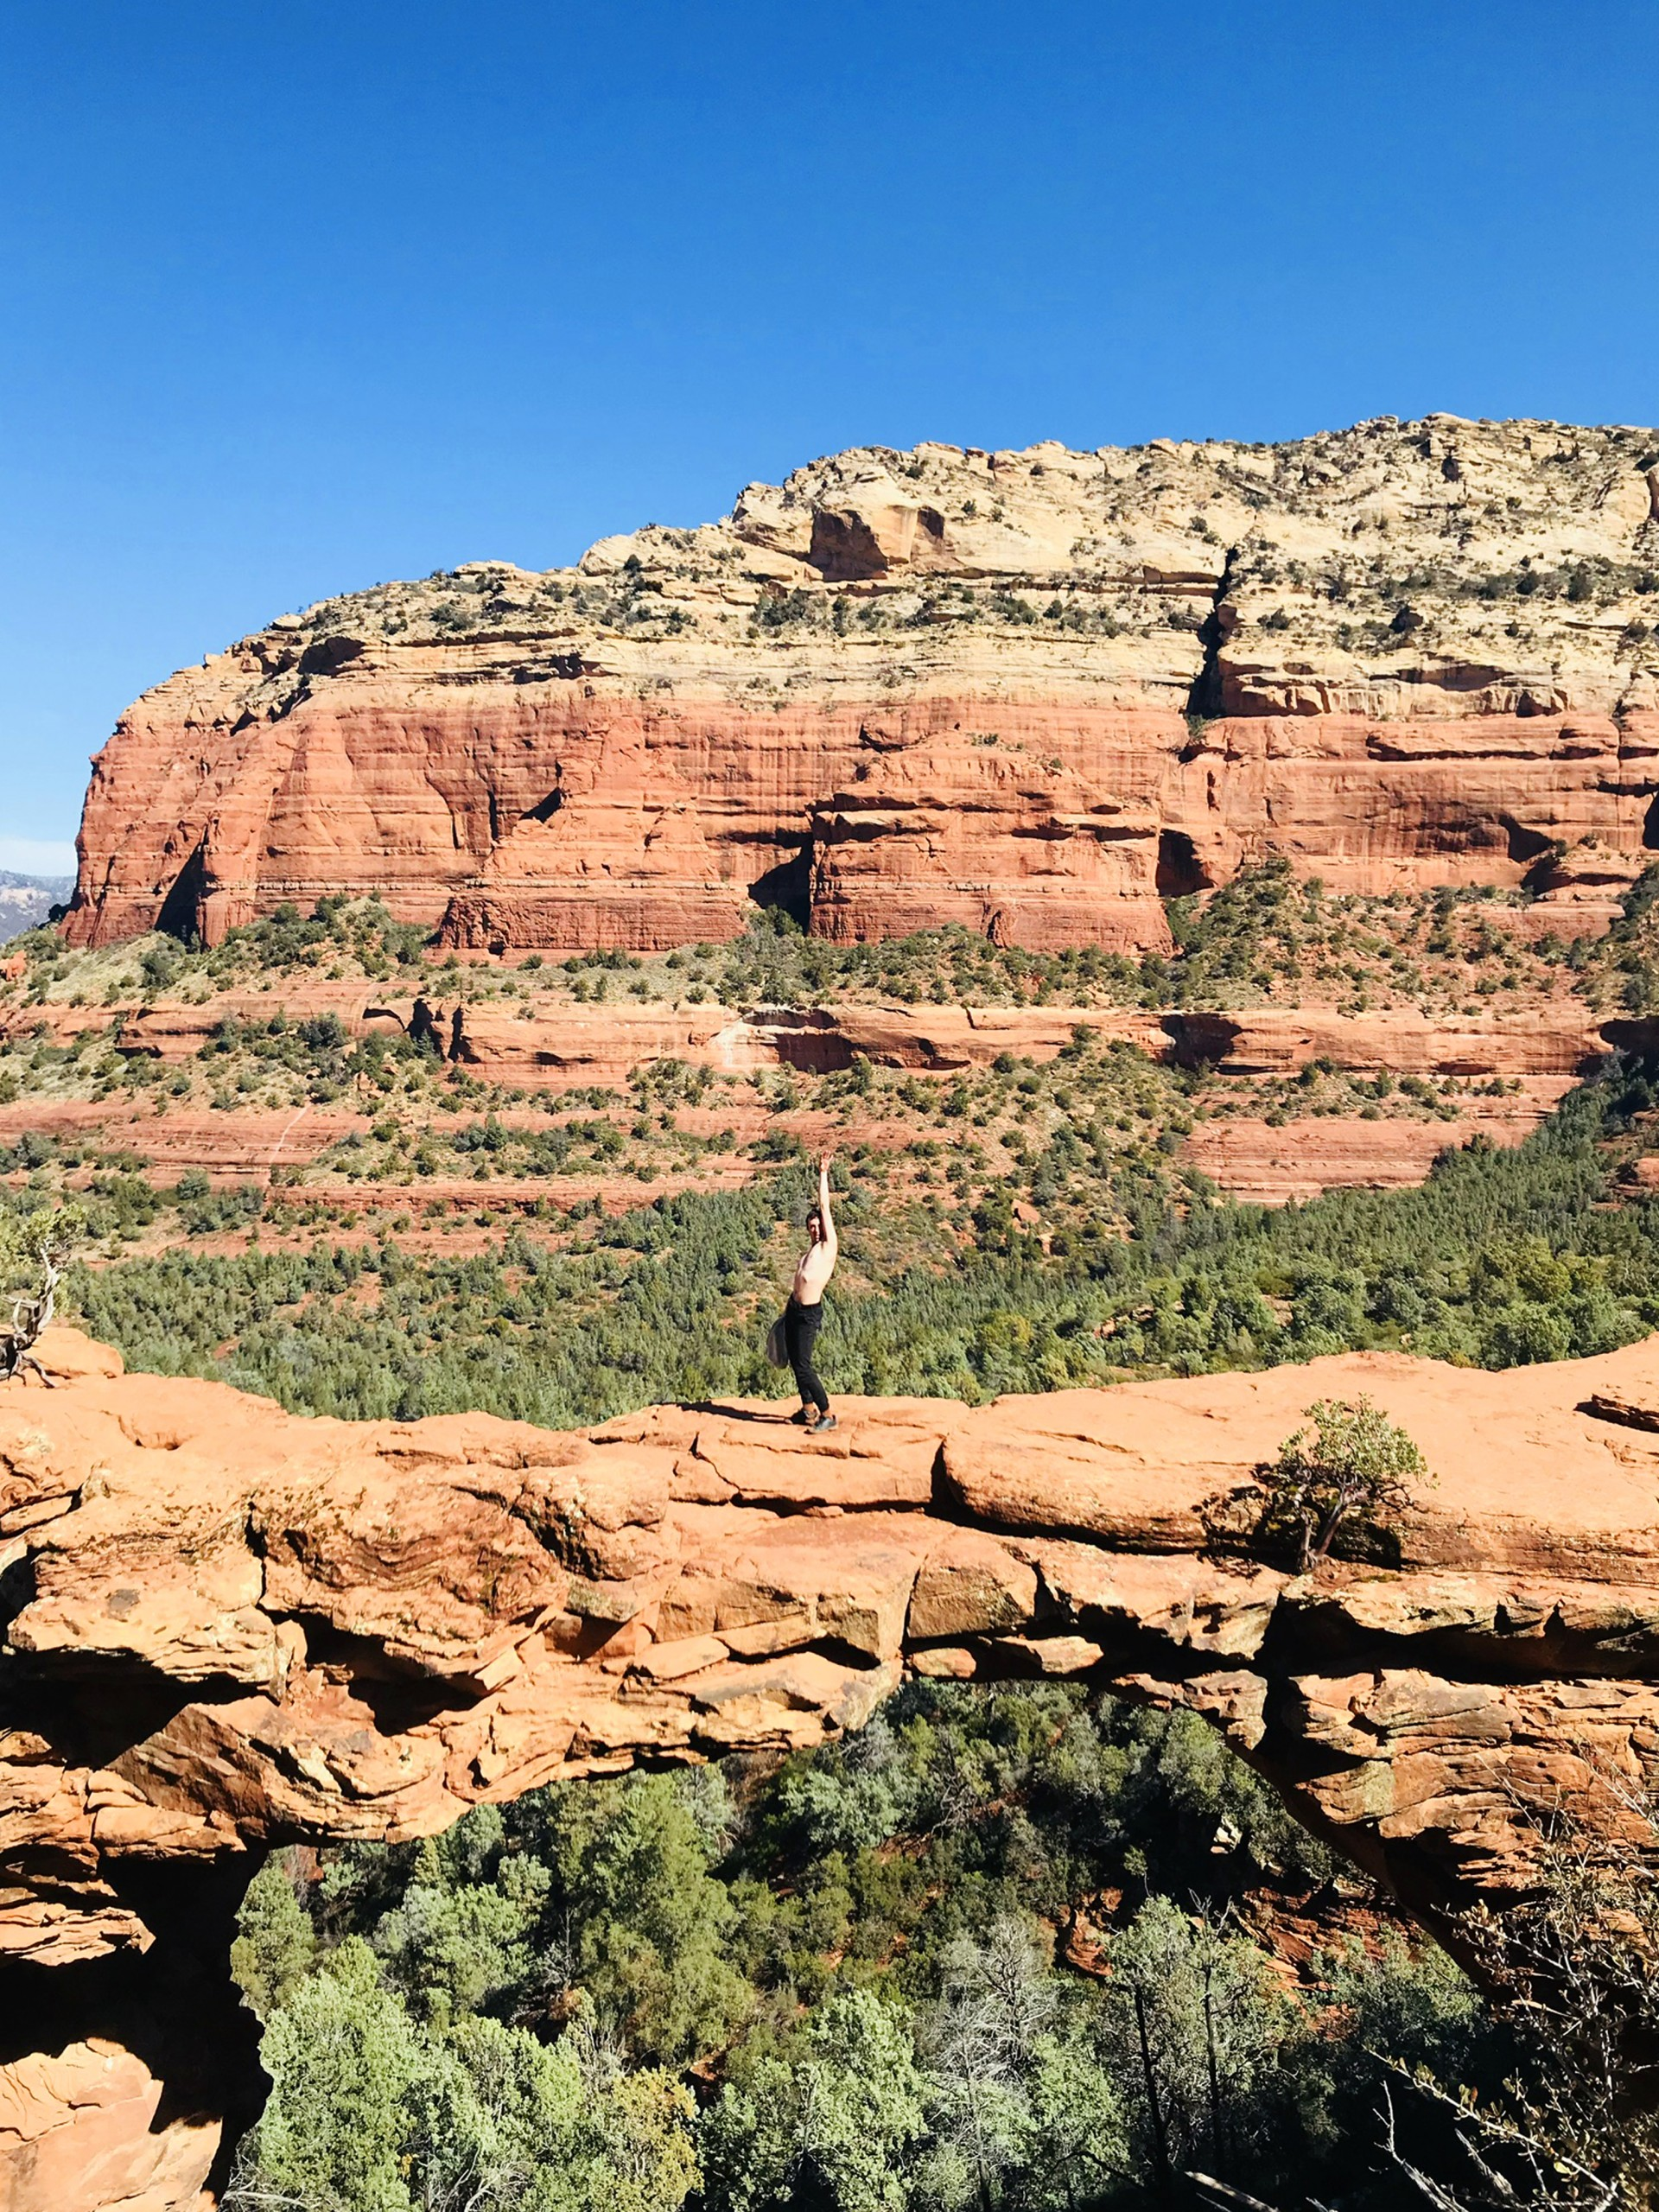 Photograph of Devil's Bridge in Sedona Arizona. Male model stands in center of bridge topless with hand draped above head.